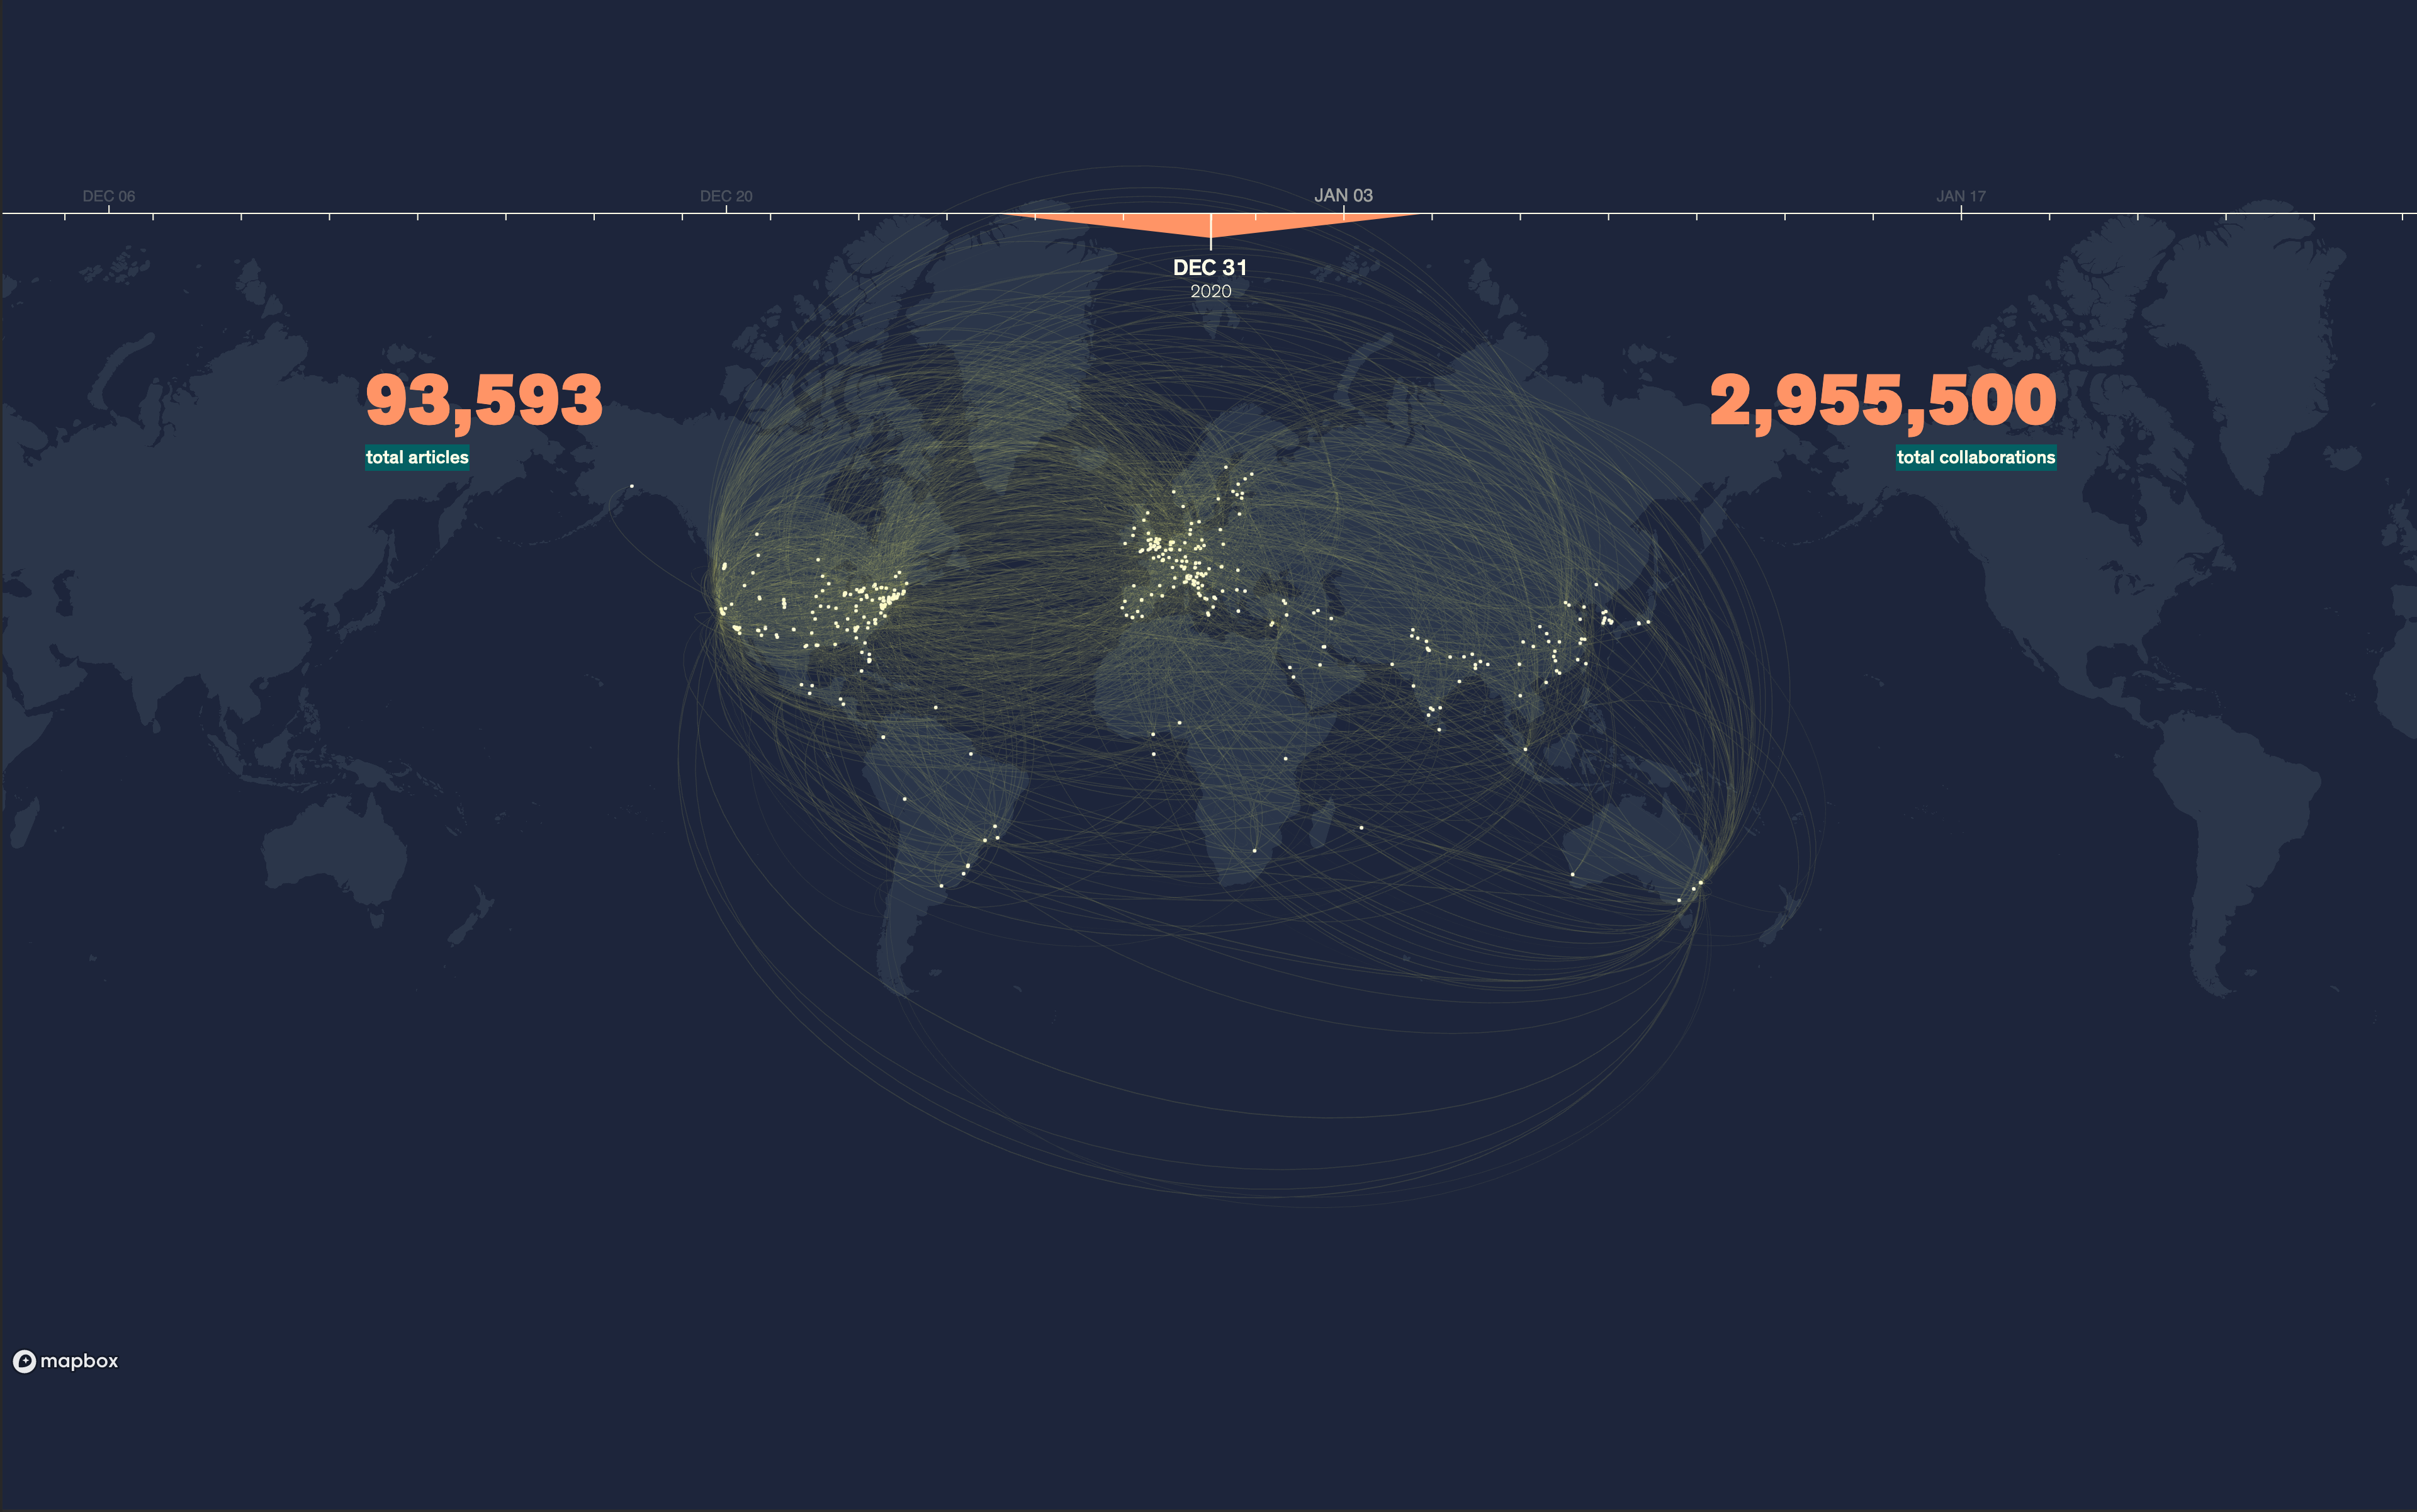 Map showing collaborations between authors around the world